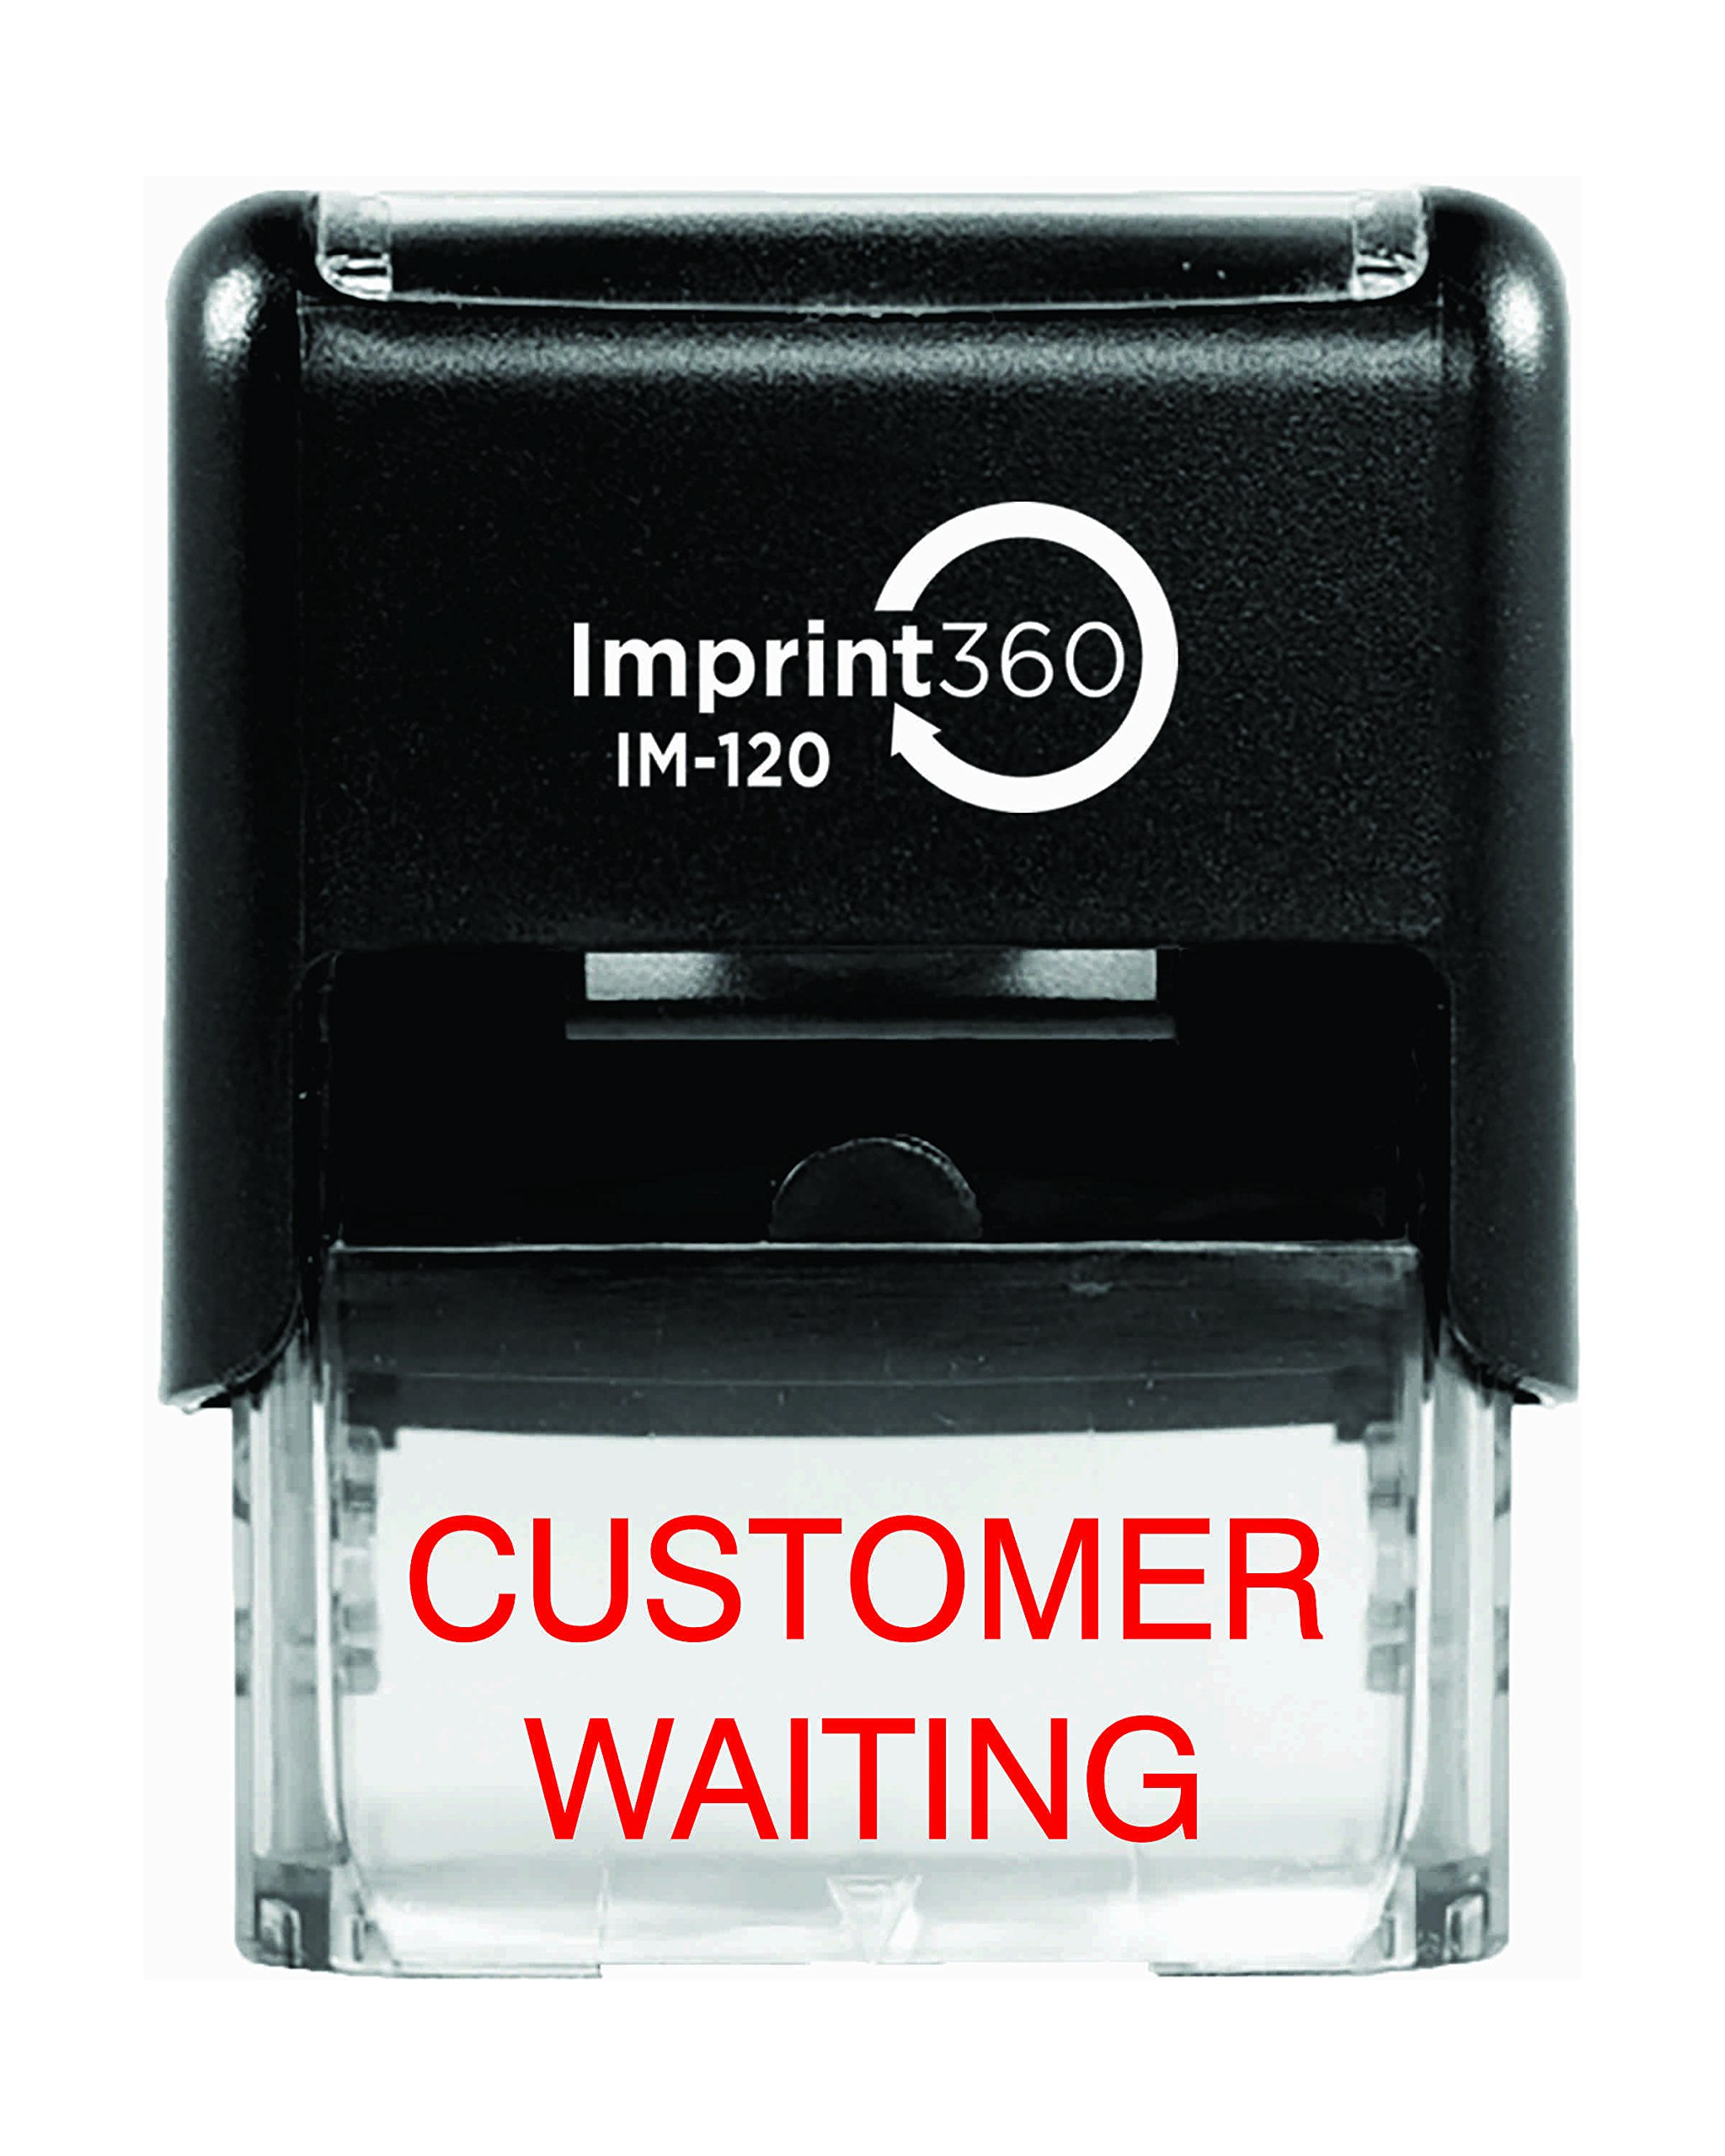 Imprint 360 AS-IMP1056 ''CUSTOMER WAITING'' Heavy Duty Commercial Quality Self Inking Rubber Stamp, Laser Engraved for Clean, Precise Imprints, 1/2'' Impression Size, 9/16'' x 1'', Red Ink